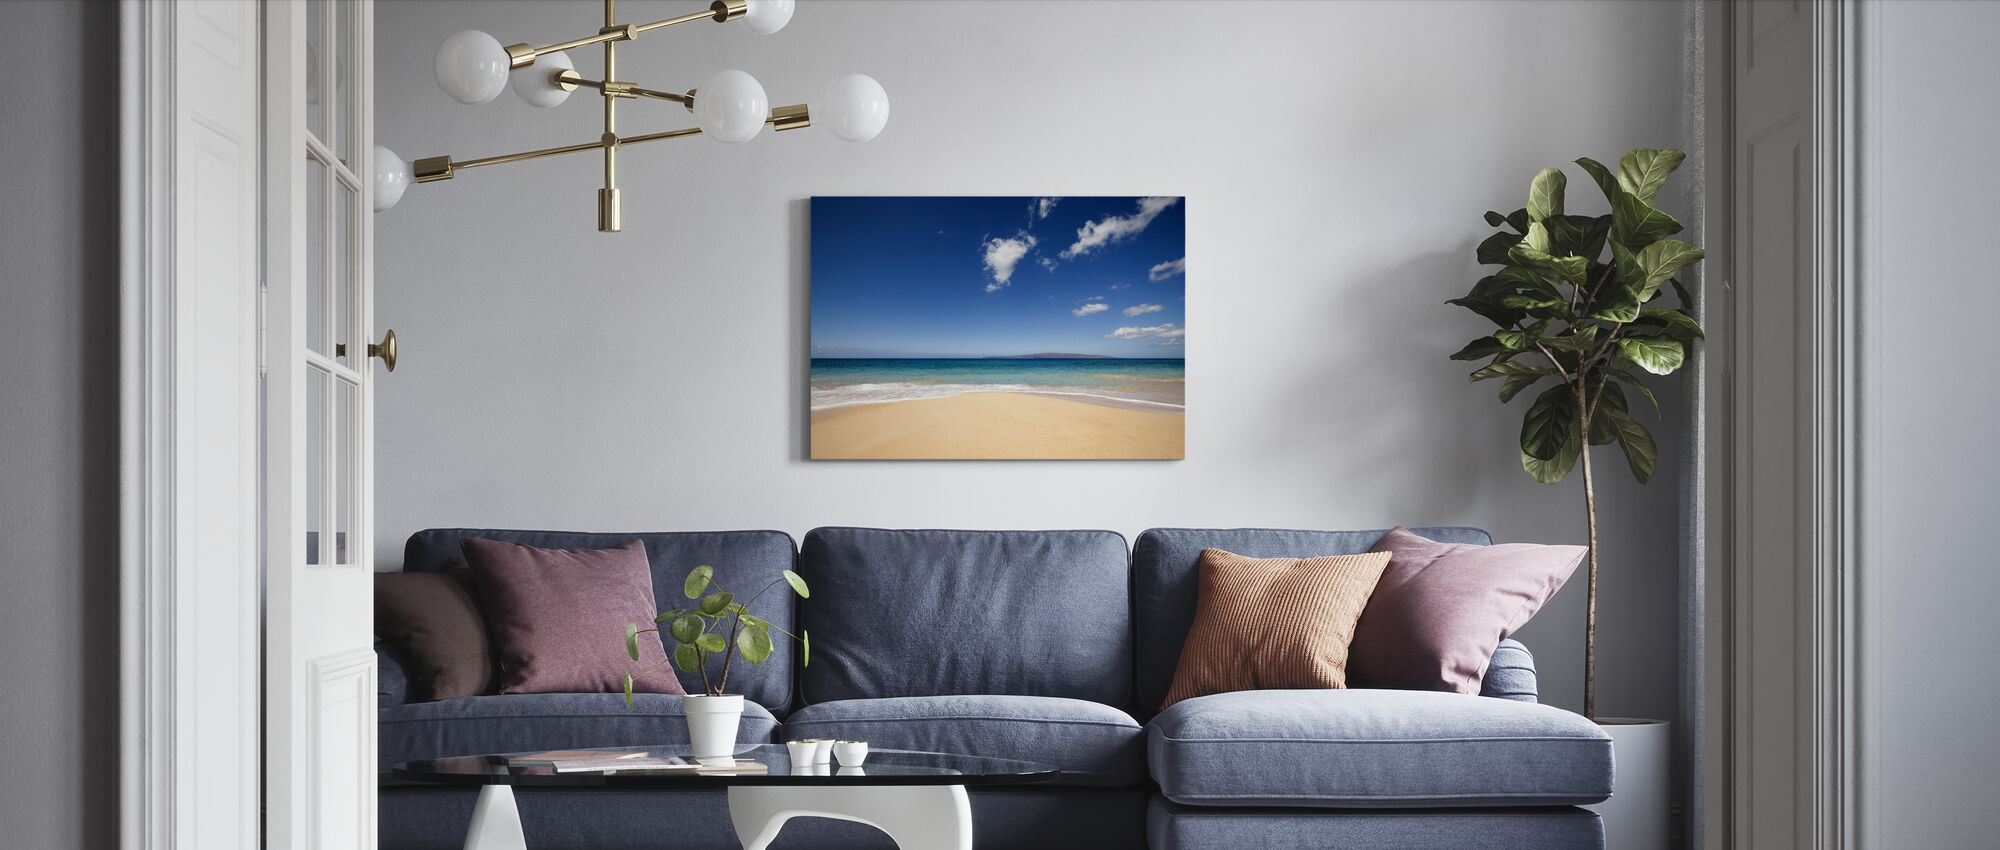 Blue Noon at the Beach - Canvas print - Living Room